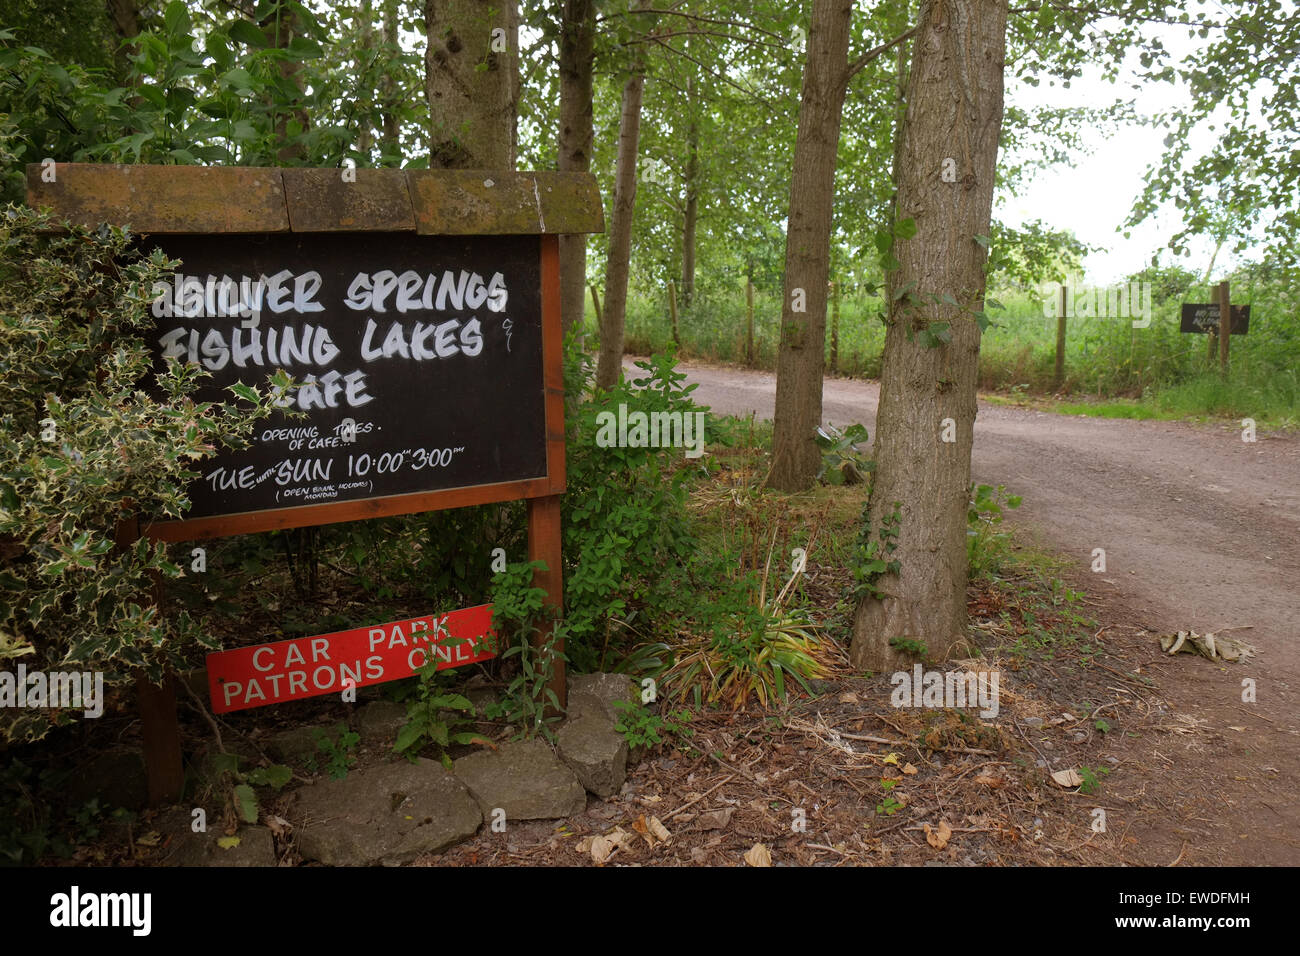 silver springs fishing lakes cafe just off the strawberry line cycle track in conglesbury north somerset england june 2015